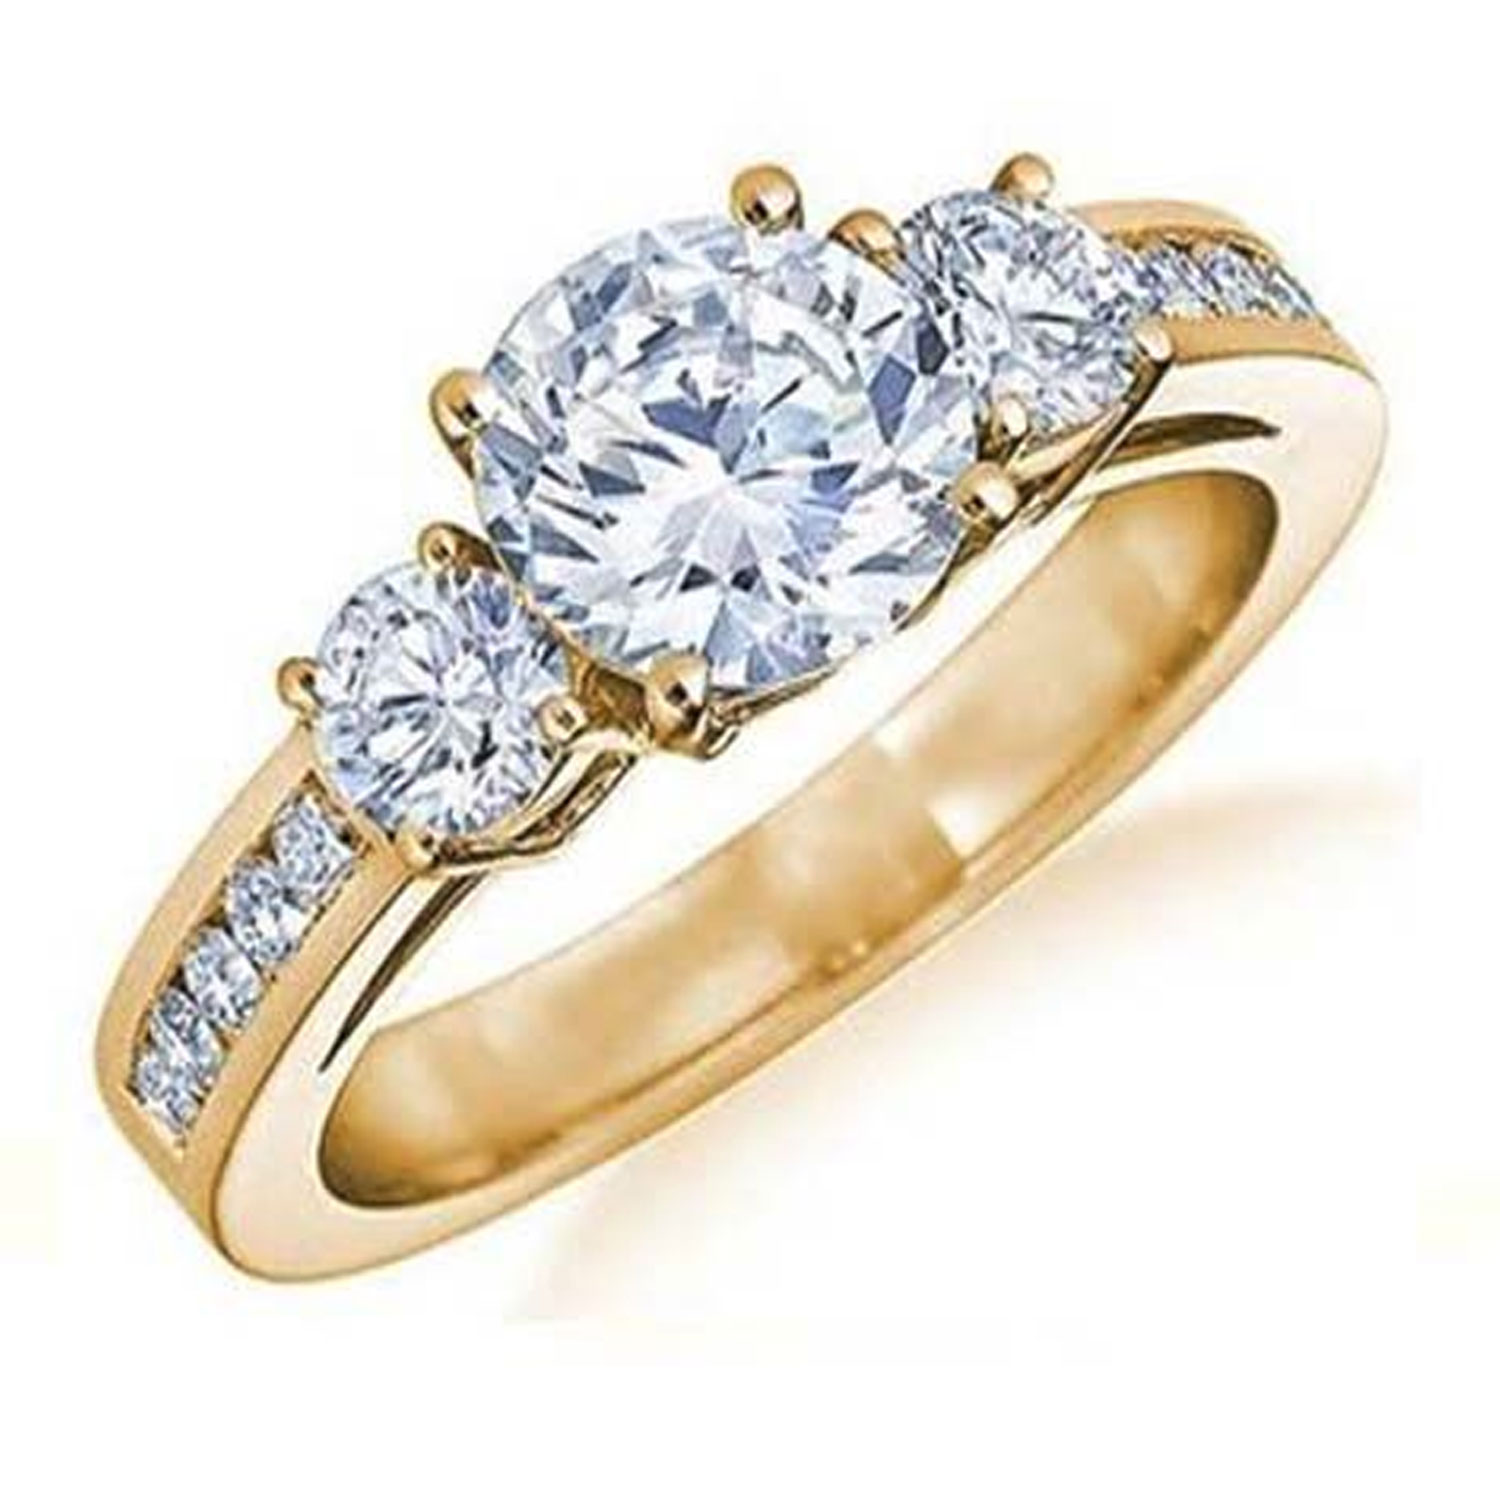 18k Gold-Plated Tri-Stone Round-Cut Bridal Ring